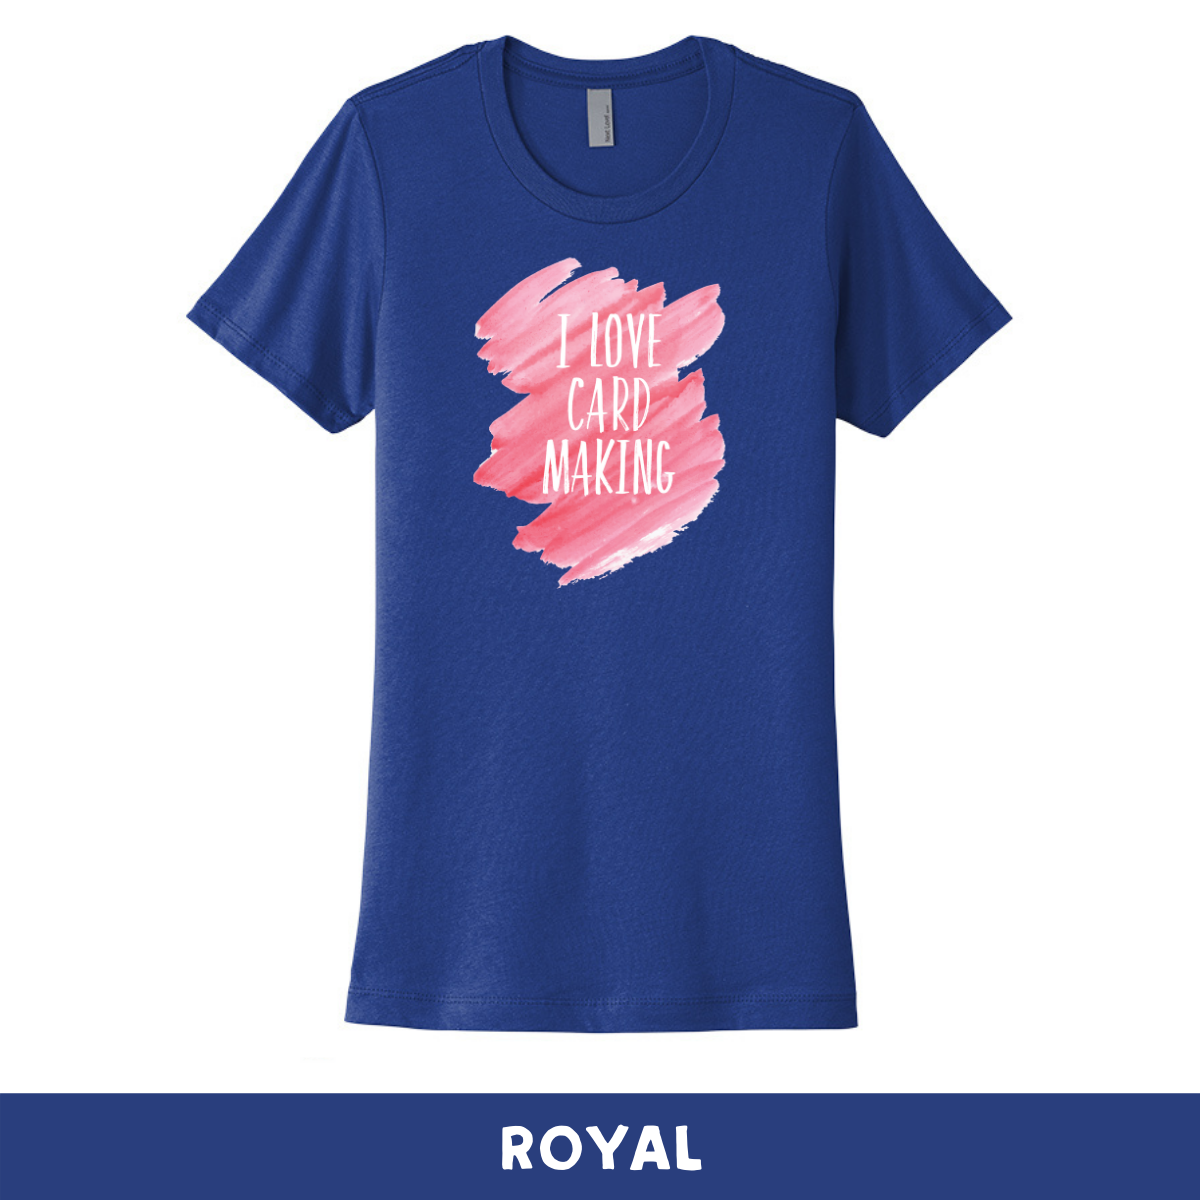 Royal - Crew Neck Boyfriend Tee - I Love Cardmaking